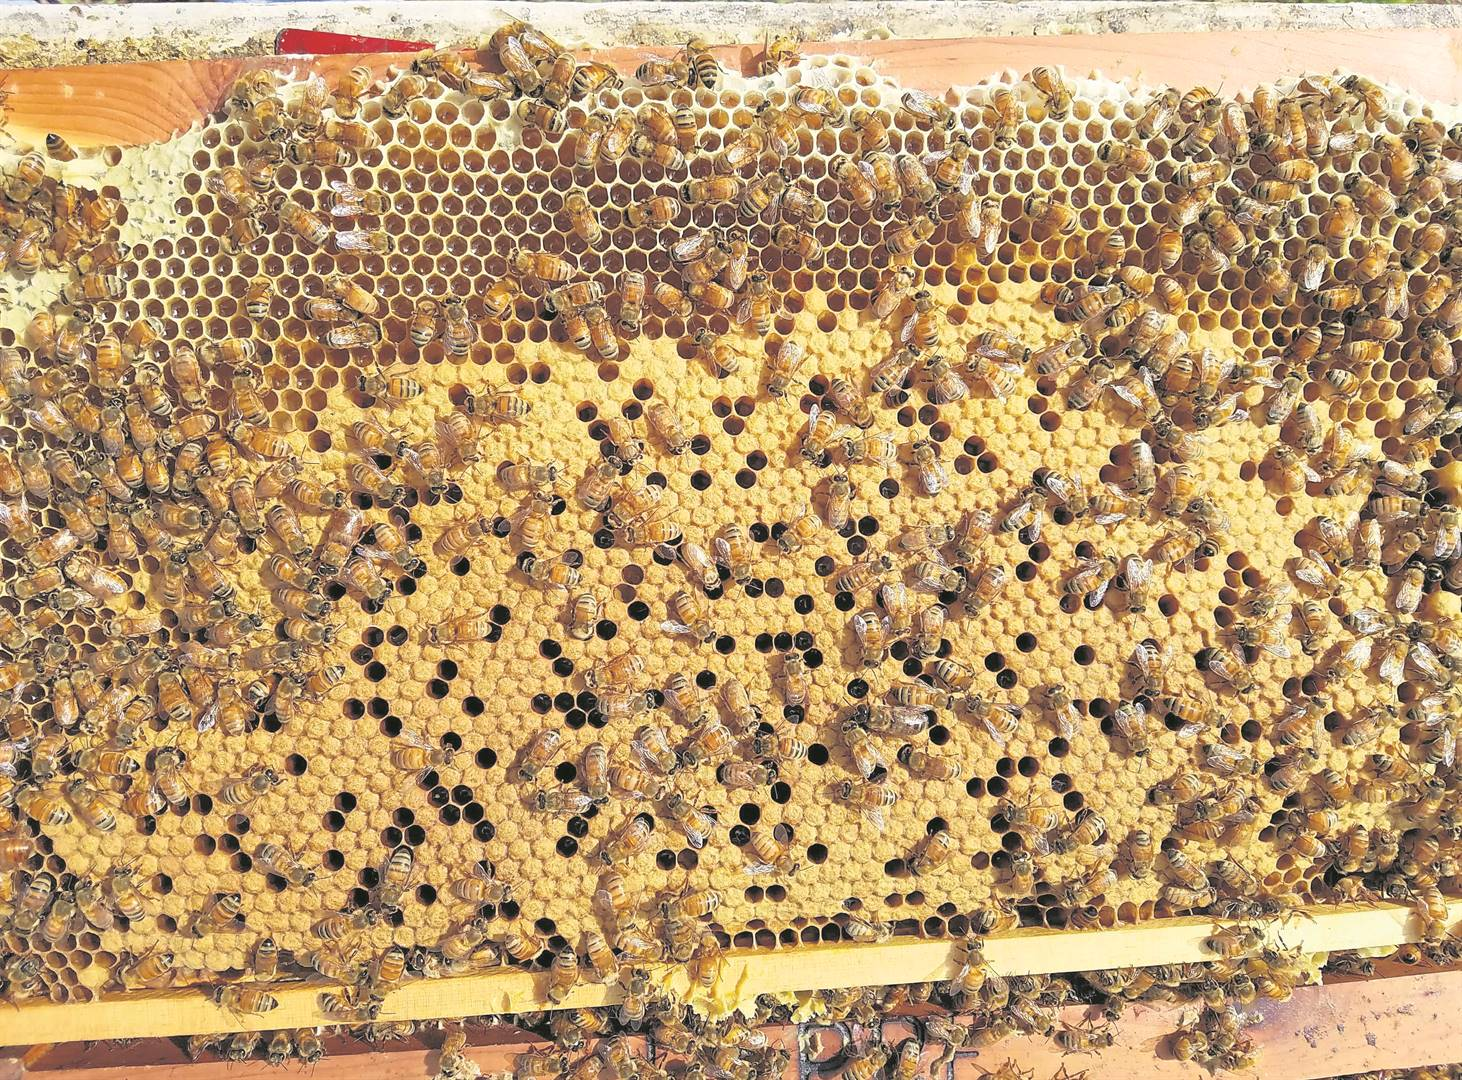 A bee hive frame that has been removed from the hive box.